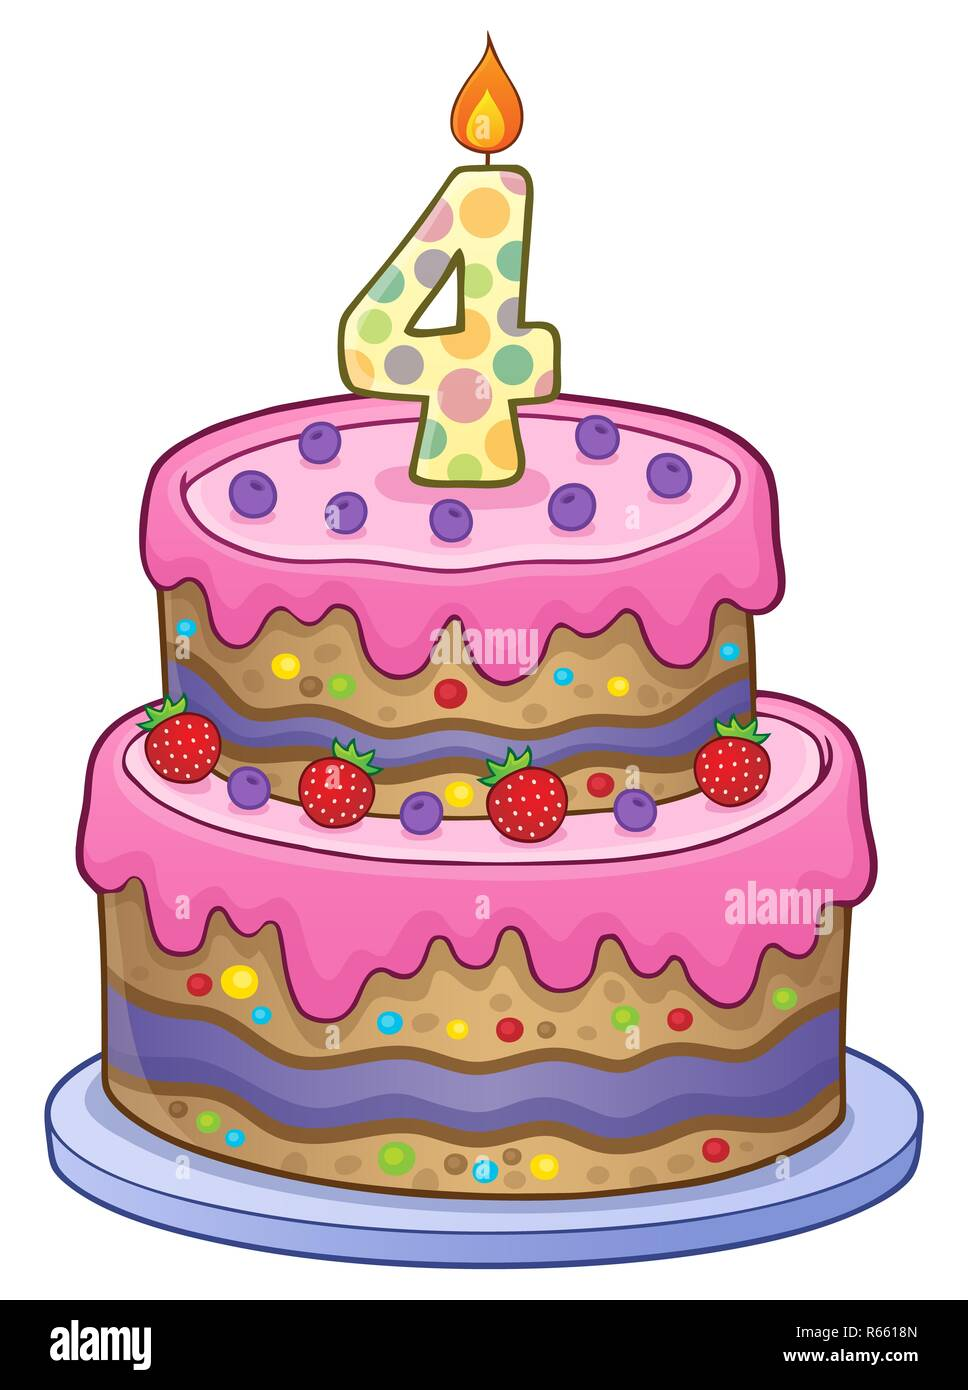 Pleasant Birthday Cake Image For 4 Years Old Stock Photo 227555461 Alamy Personalised Birthday Cards Veneteletsinfo